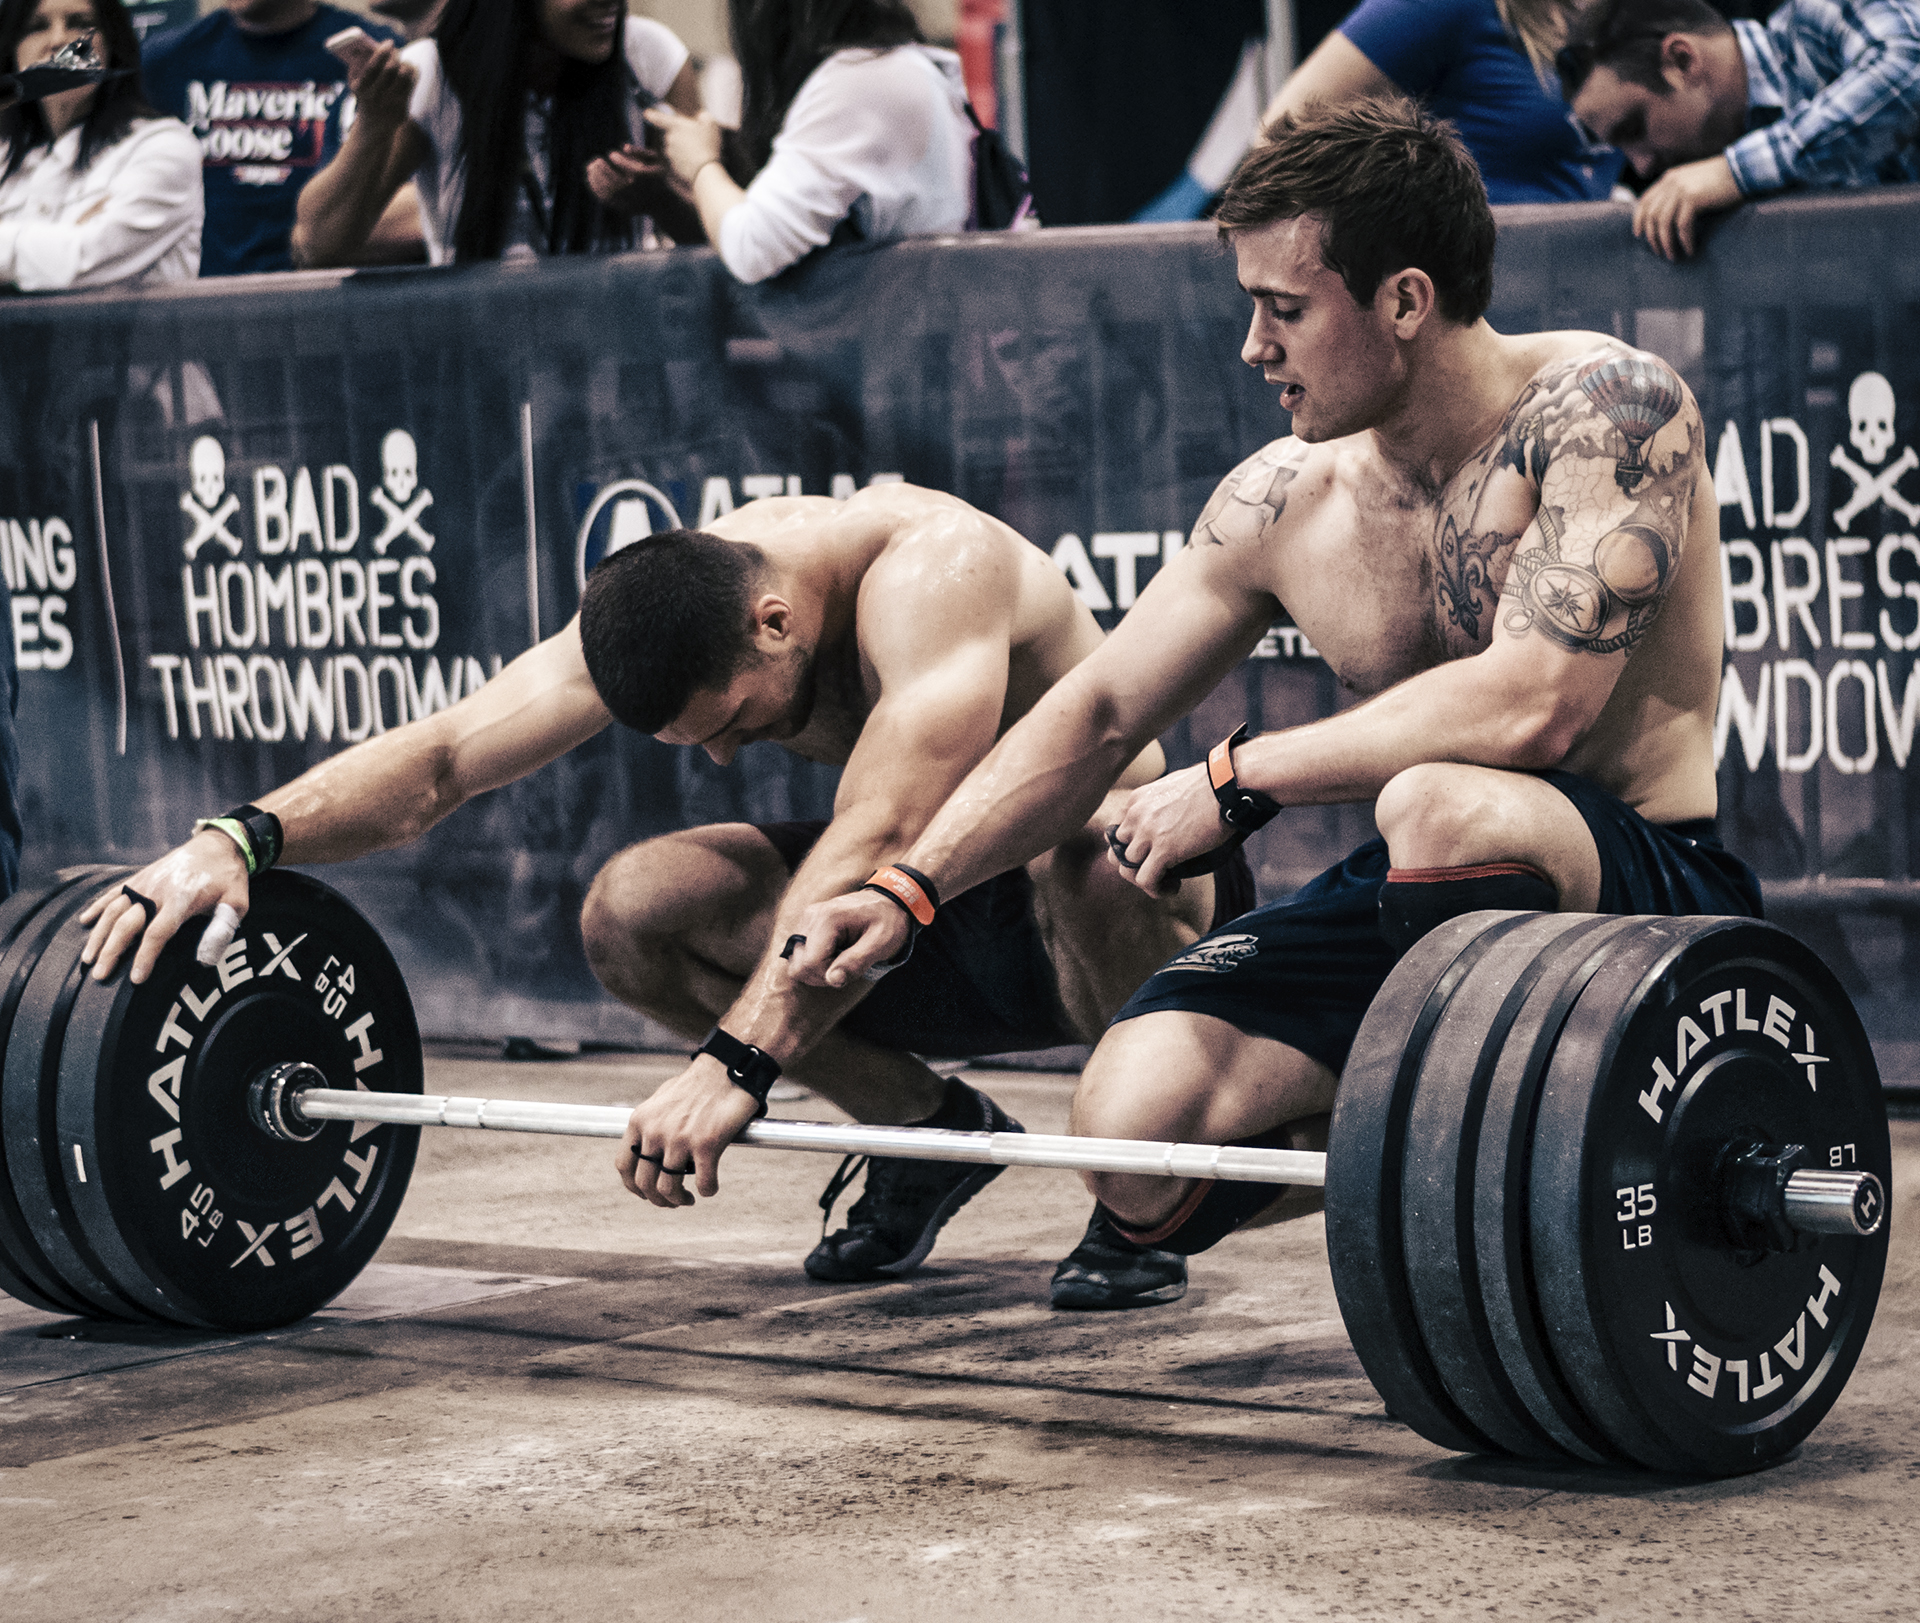 CrossFit athlete team cheering up each other